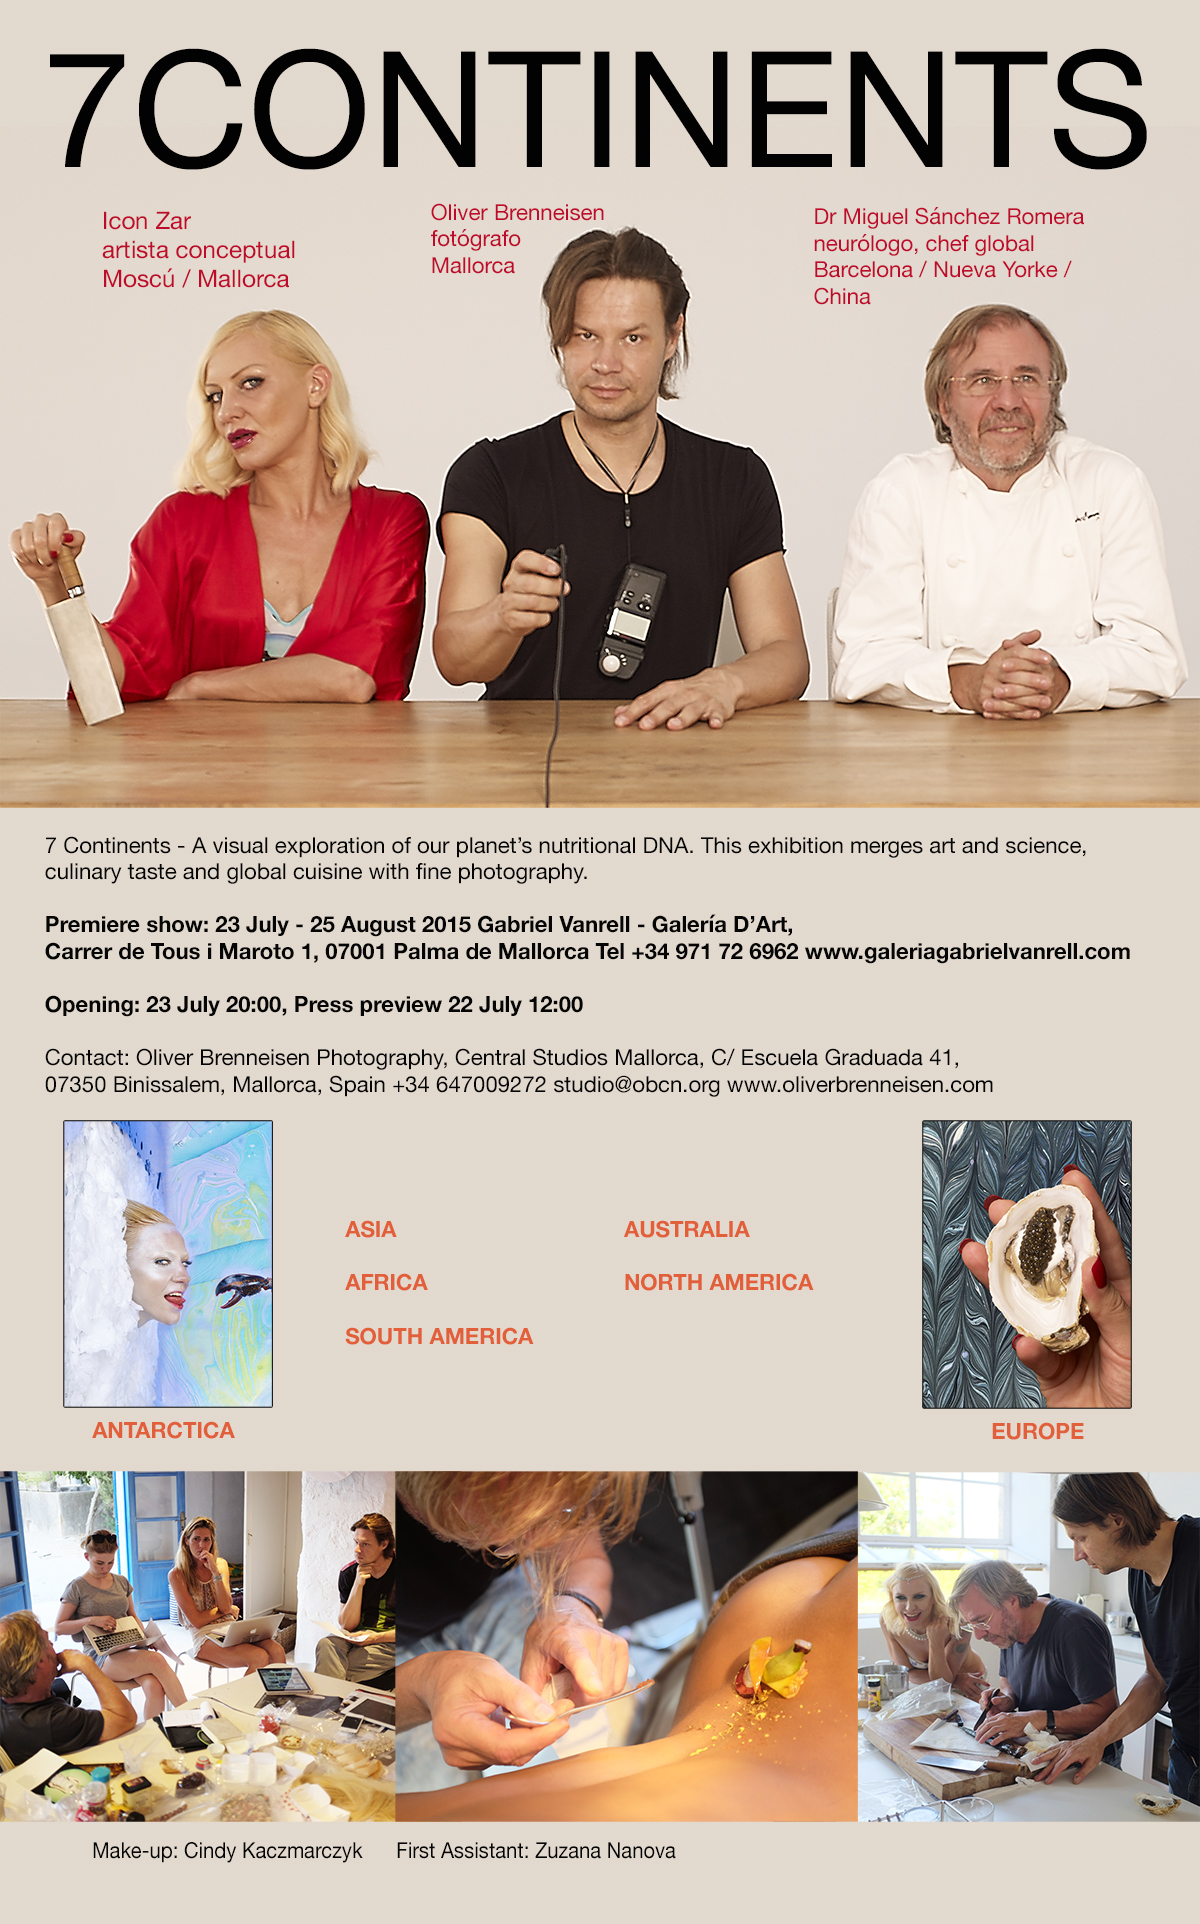 7 Continents - A visual exploration of our planet's nutritional DNA. This exhibition merges art and science,  culinary taste and global cuisine with fine photography. Premiere show: 23 July - 25 August 2015 Gabriel Vanrell - Galería D'Art,  Carrer de Tous i Maroto 1, 07001 Palma de Mallorca Tel +34 971 72 6962 www.galeriagabrielvanrell.com Opening: 23 July 20:00